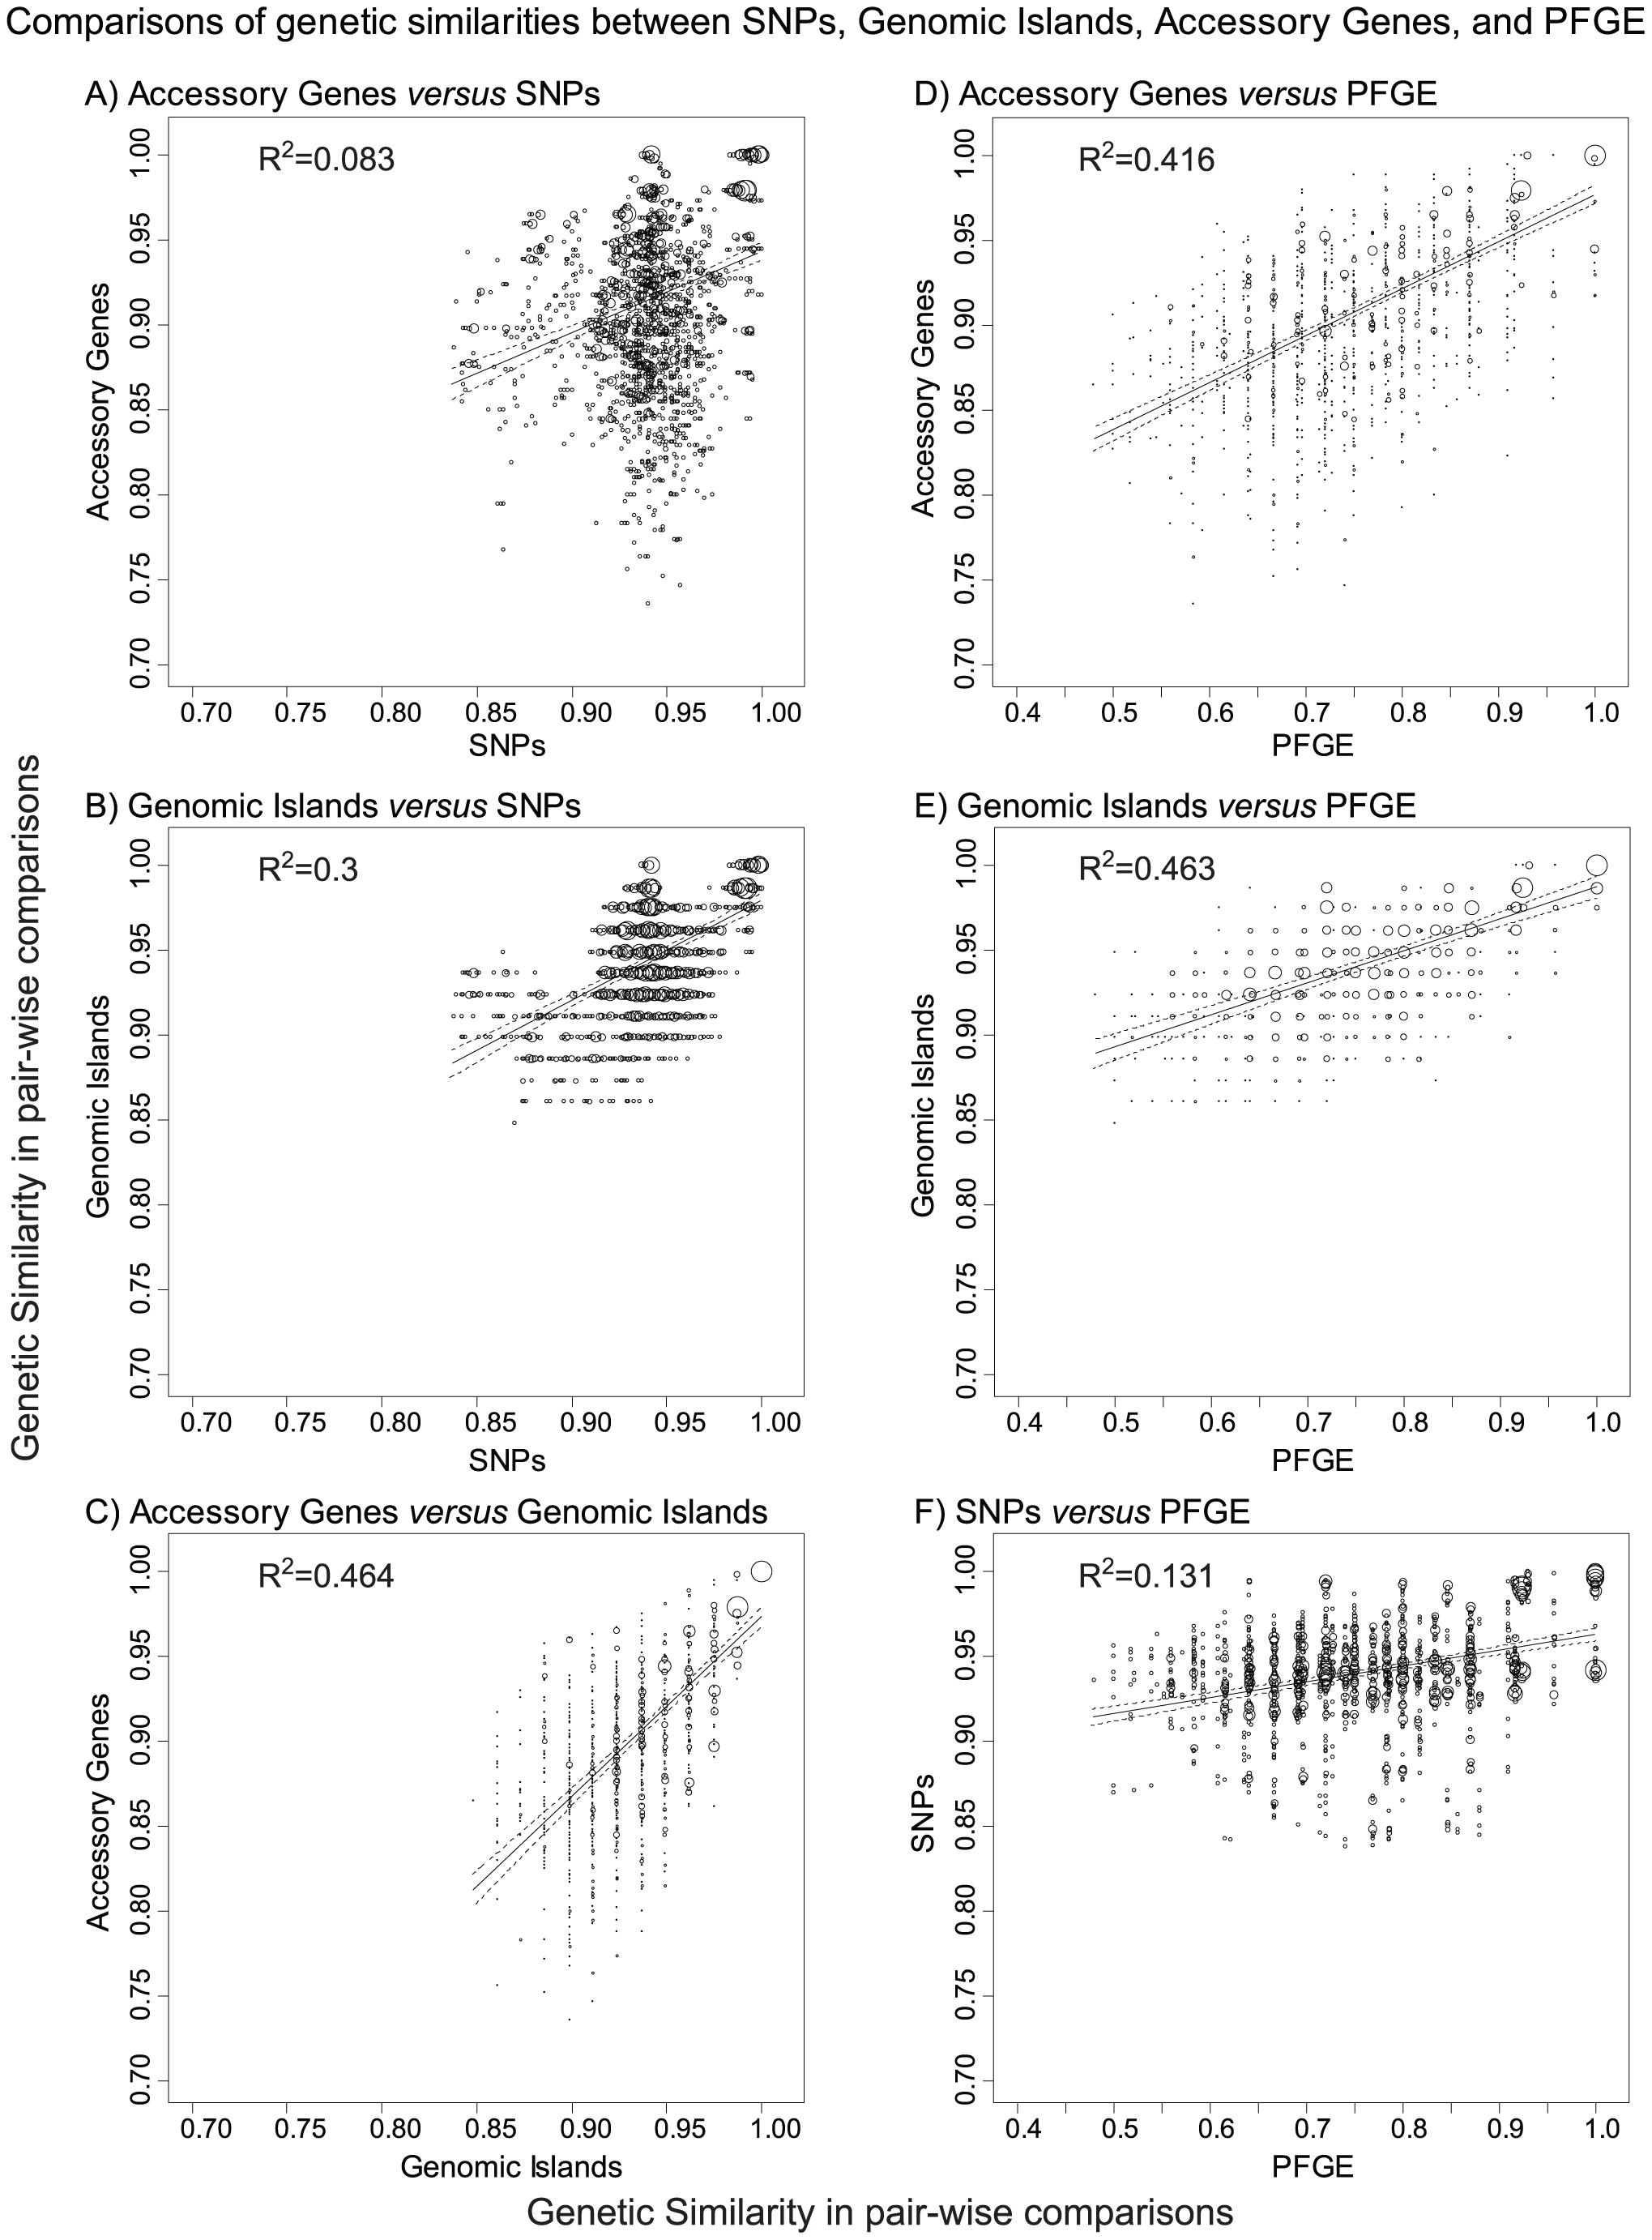 Comparisons of genetic similarities between core, non-repetitive, non-mobile SNPs, genomic islands, accessory genes, and PFGE bands.